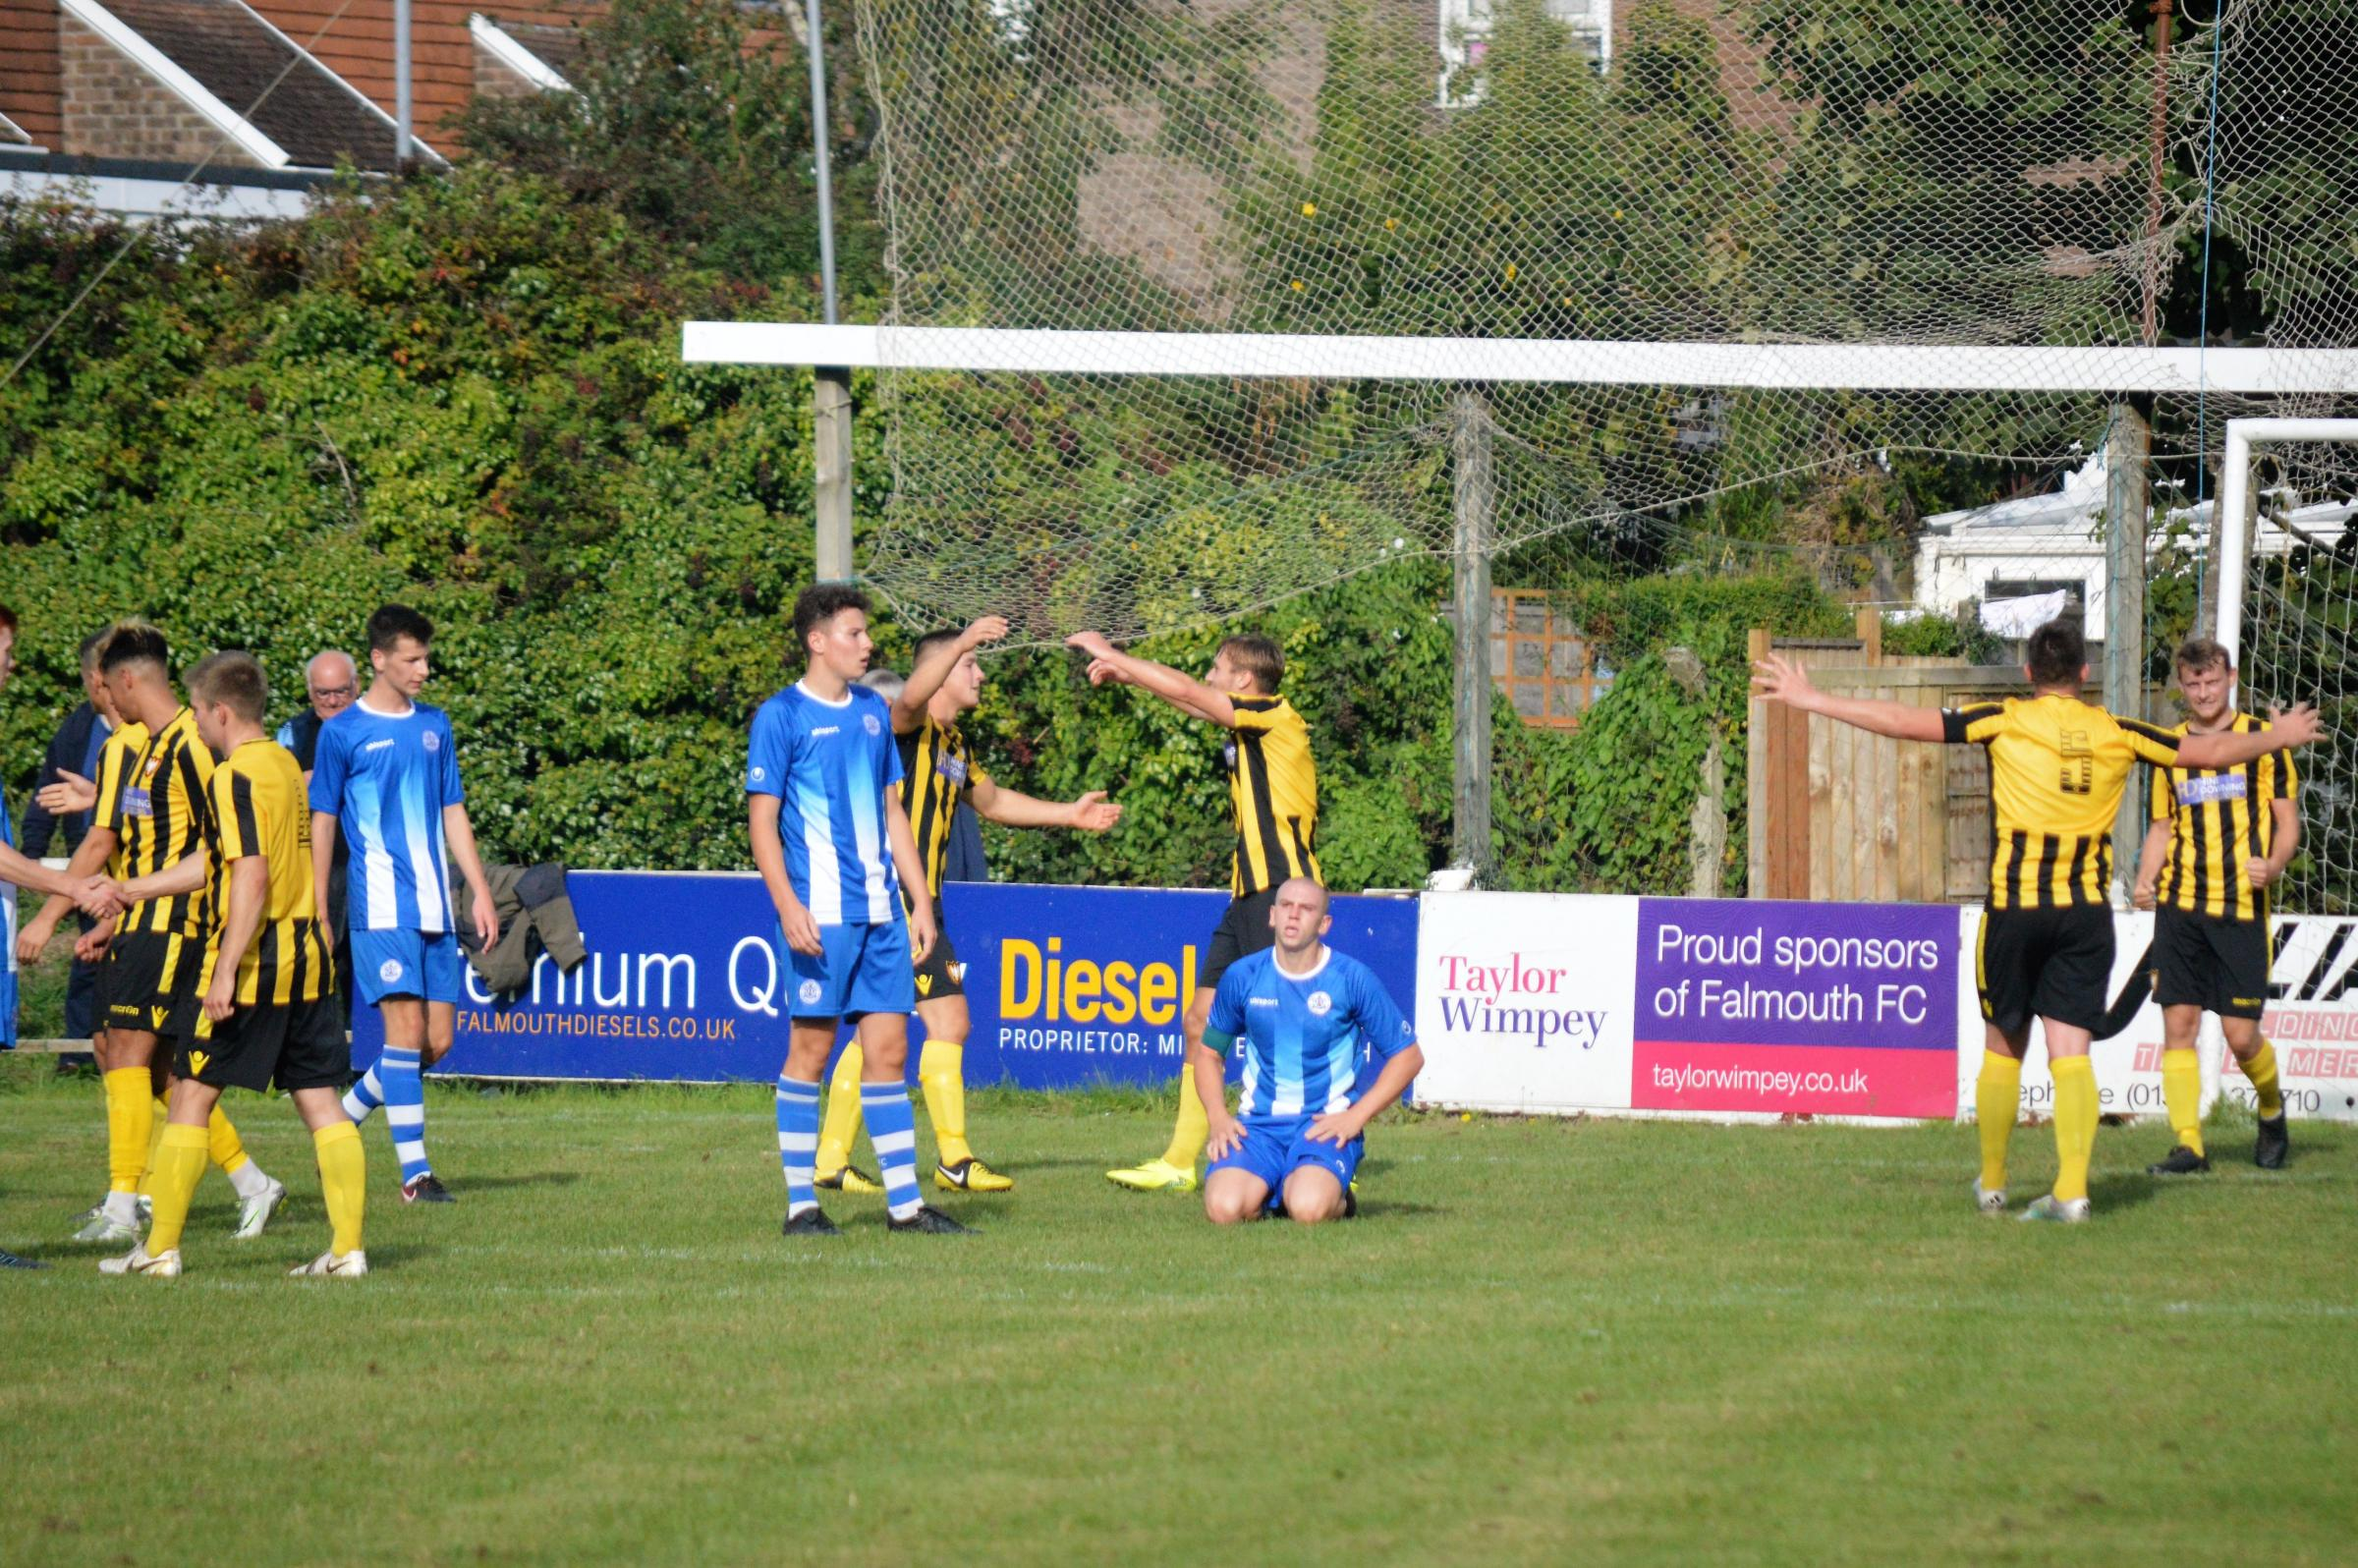 Falmouth Town lost 3-1 after extra-time at Dorset club Hamworthy United in the FA Vase second round proper on Saturday